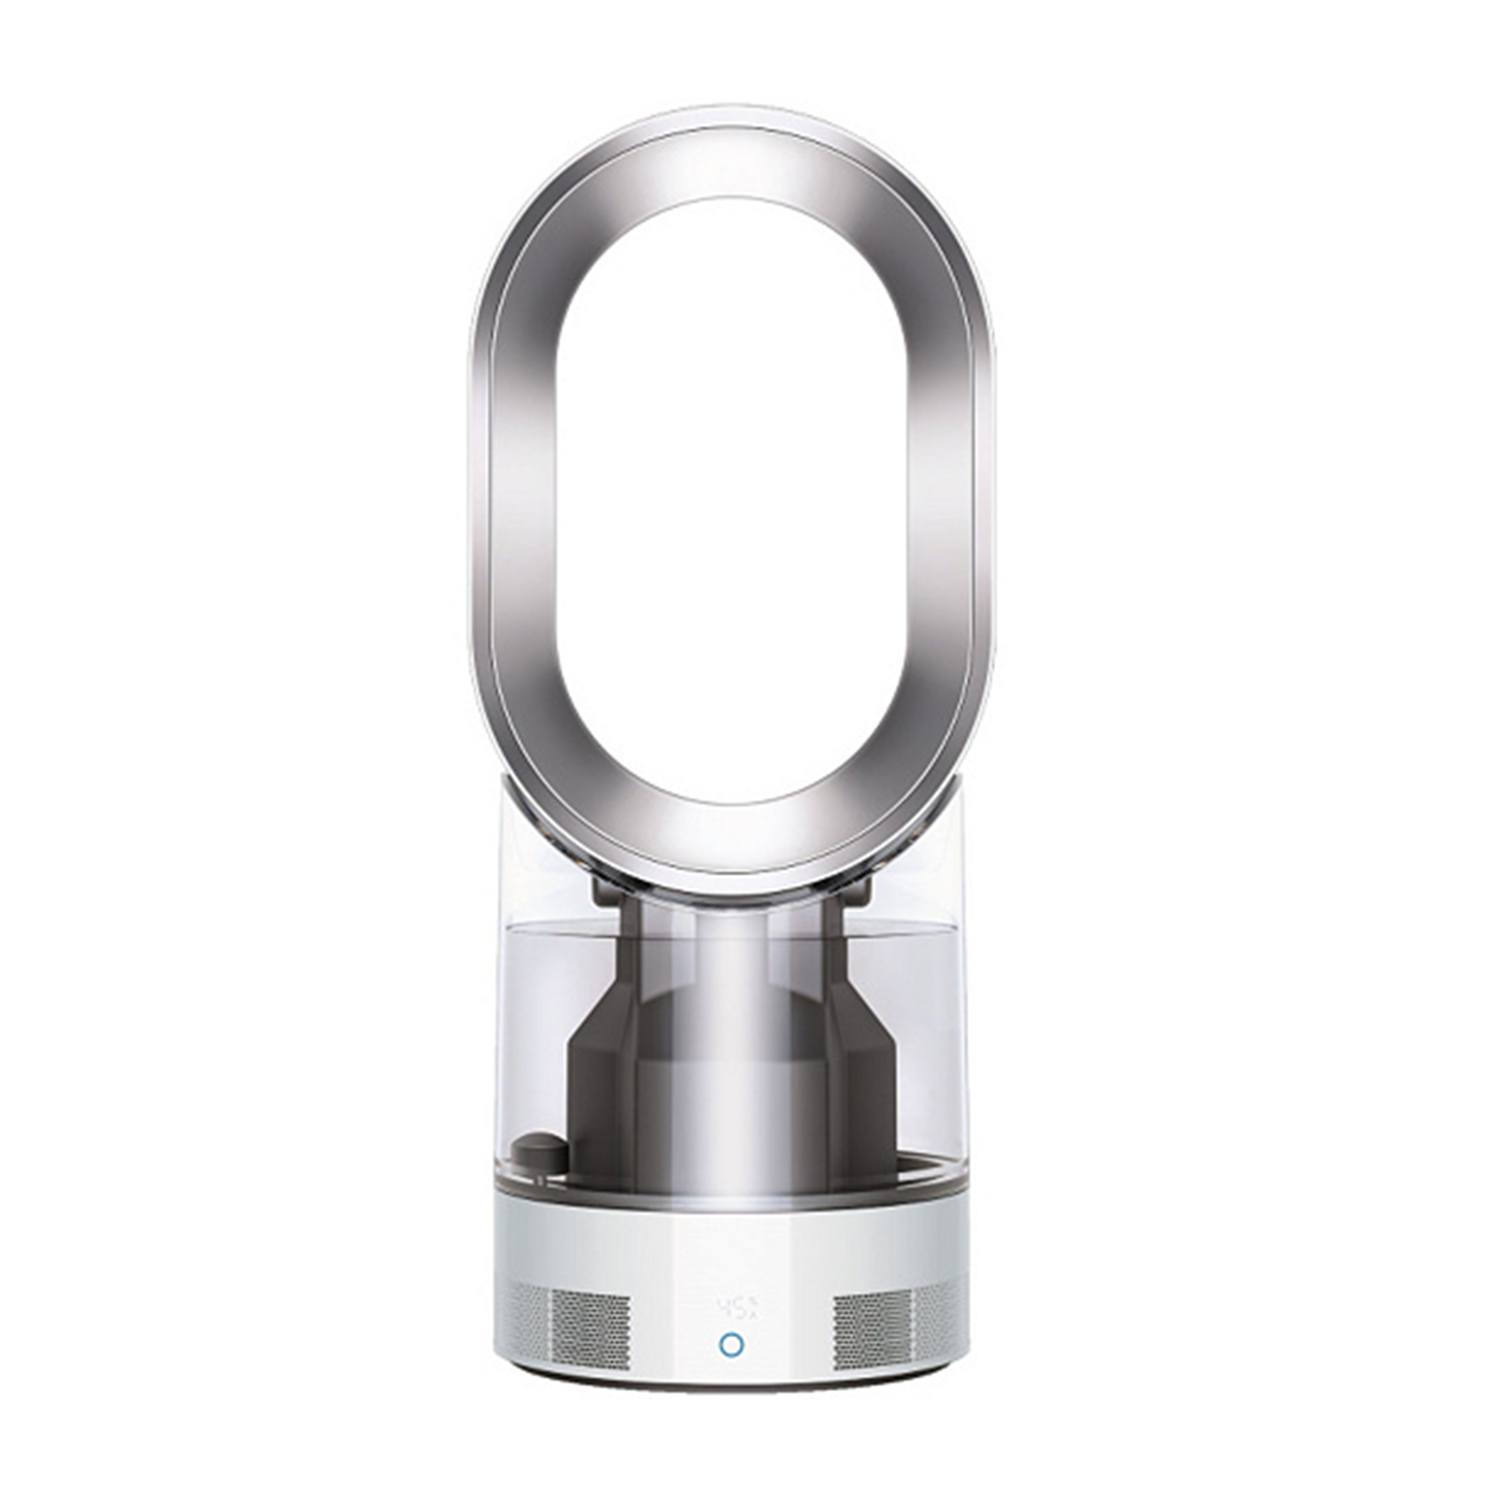 Dyson AM10 Ultrasonic Humidifier & Air Multiplier